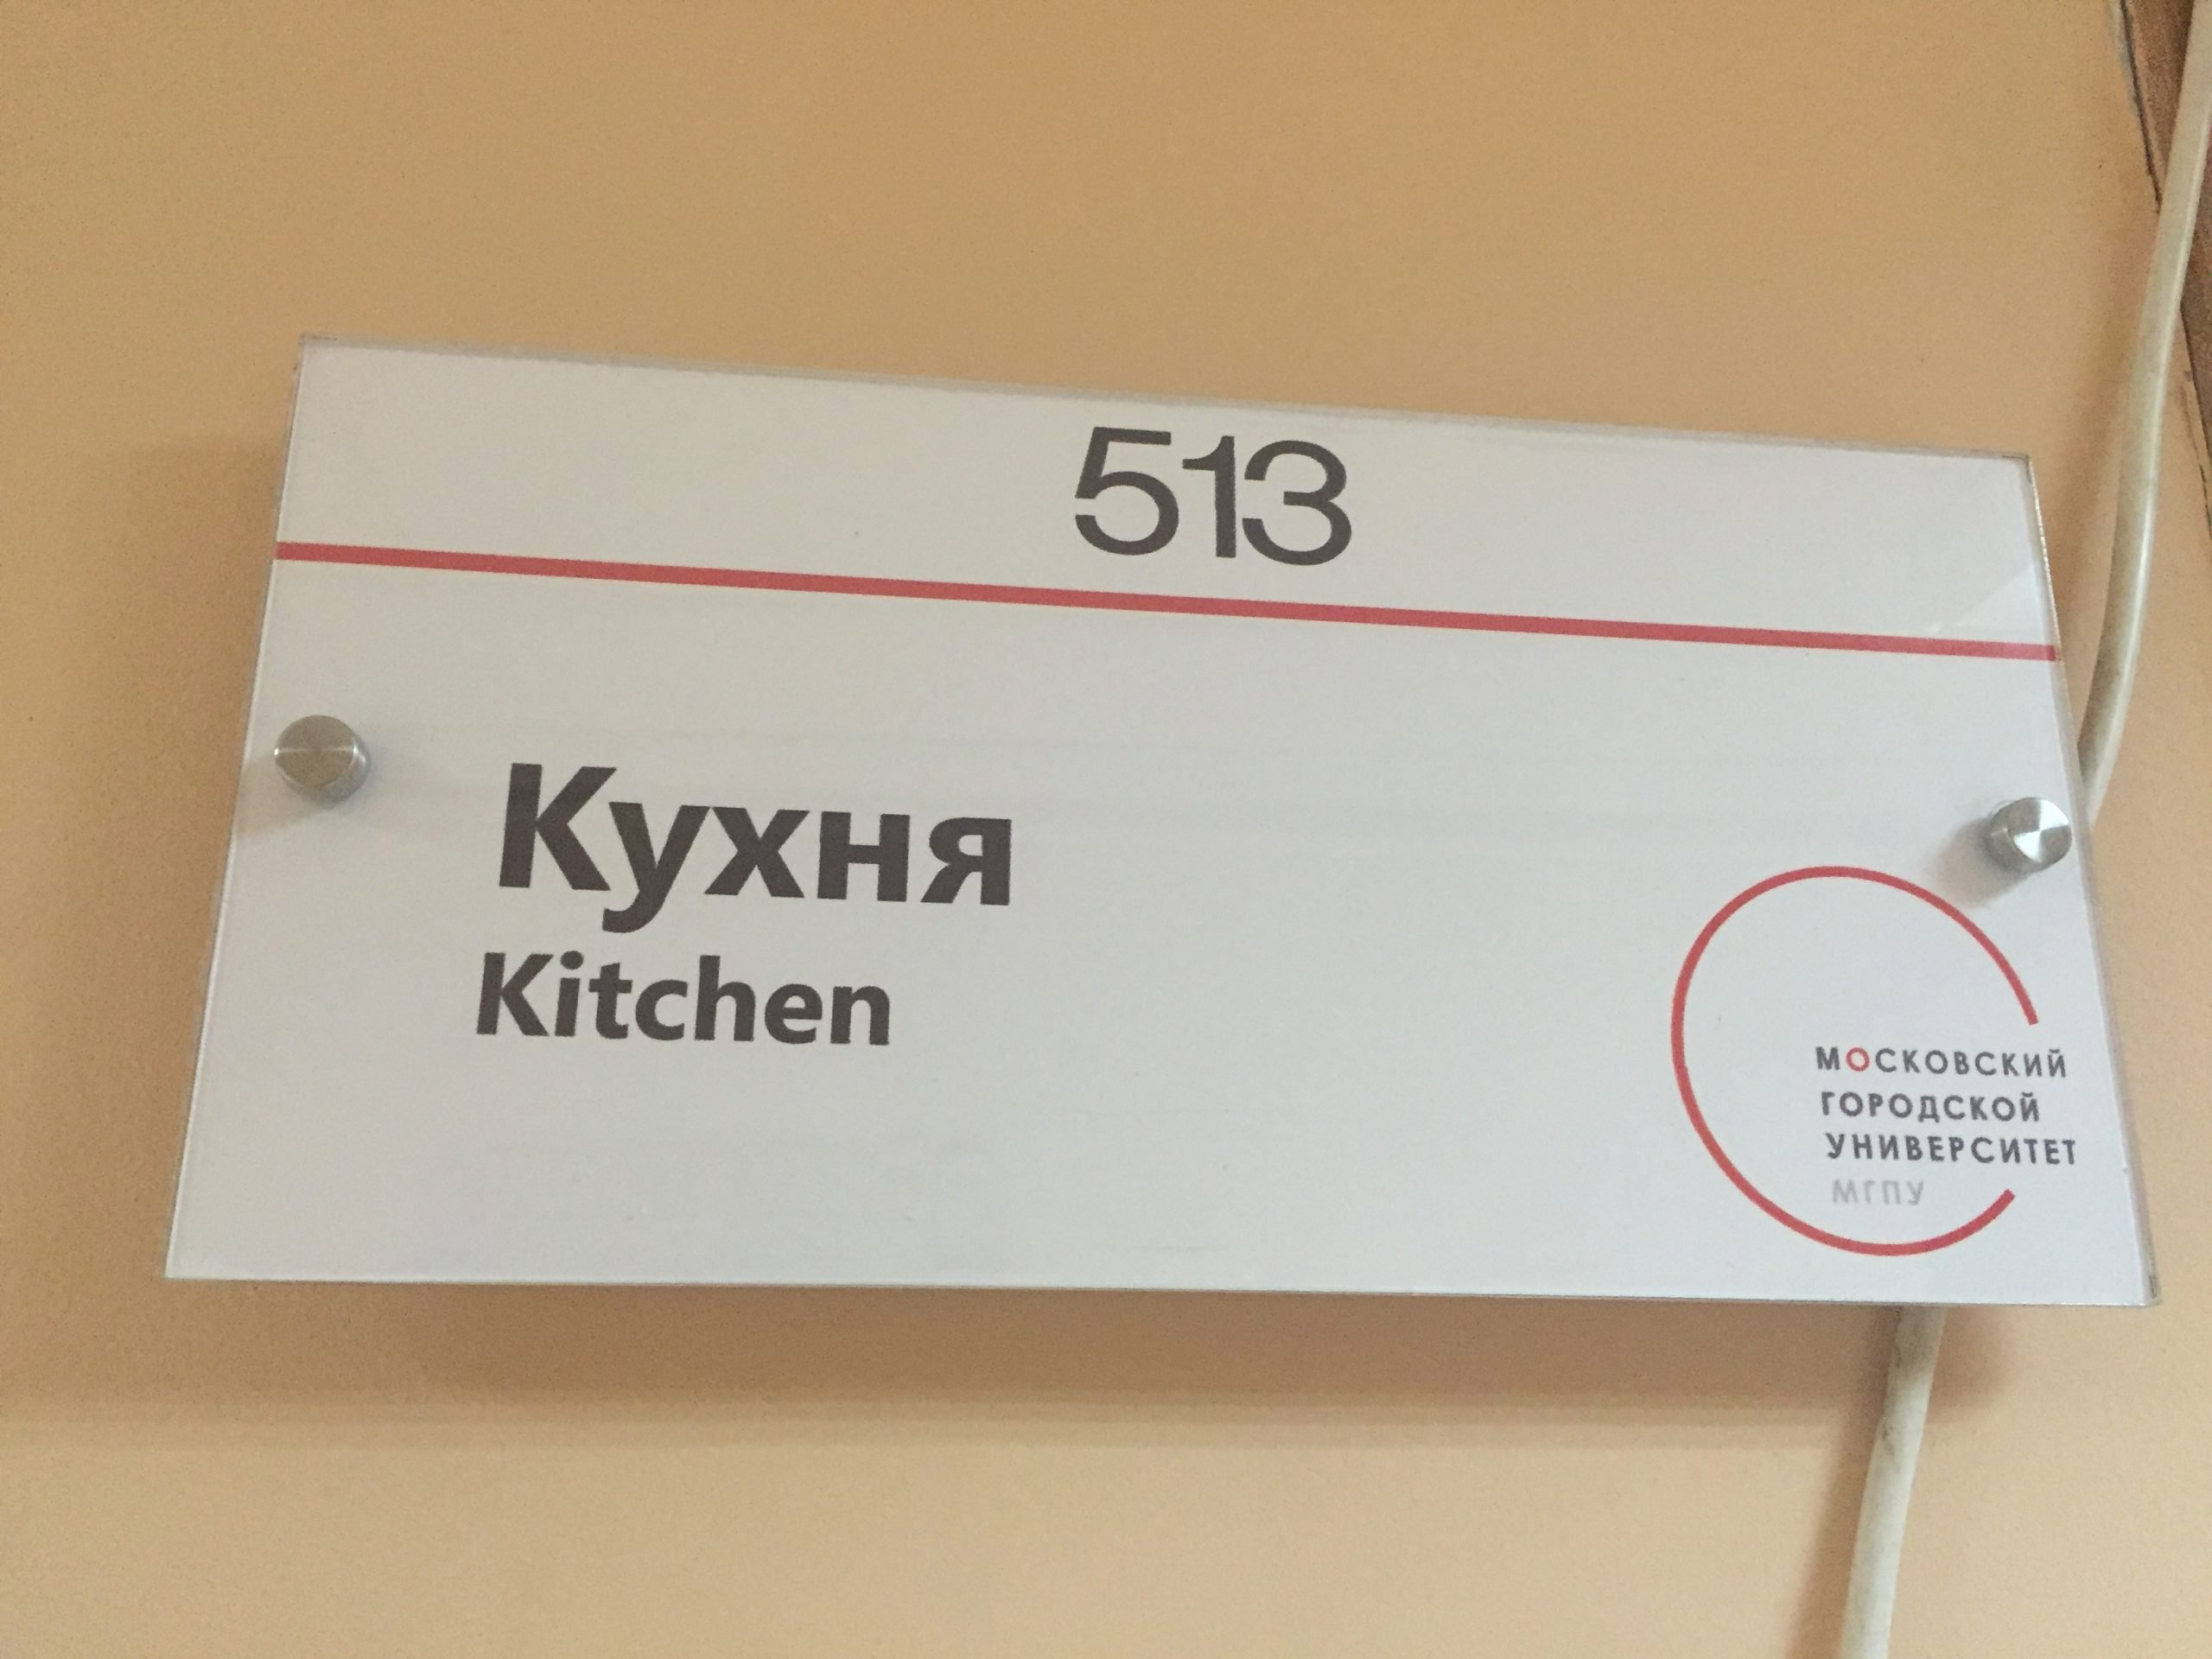 kitchen in Moscow